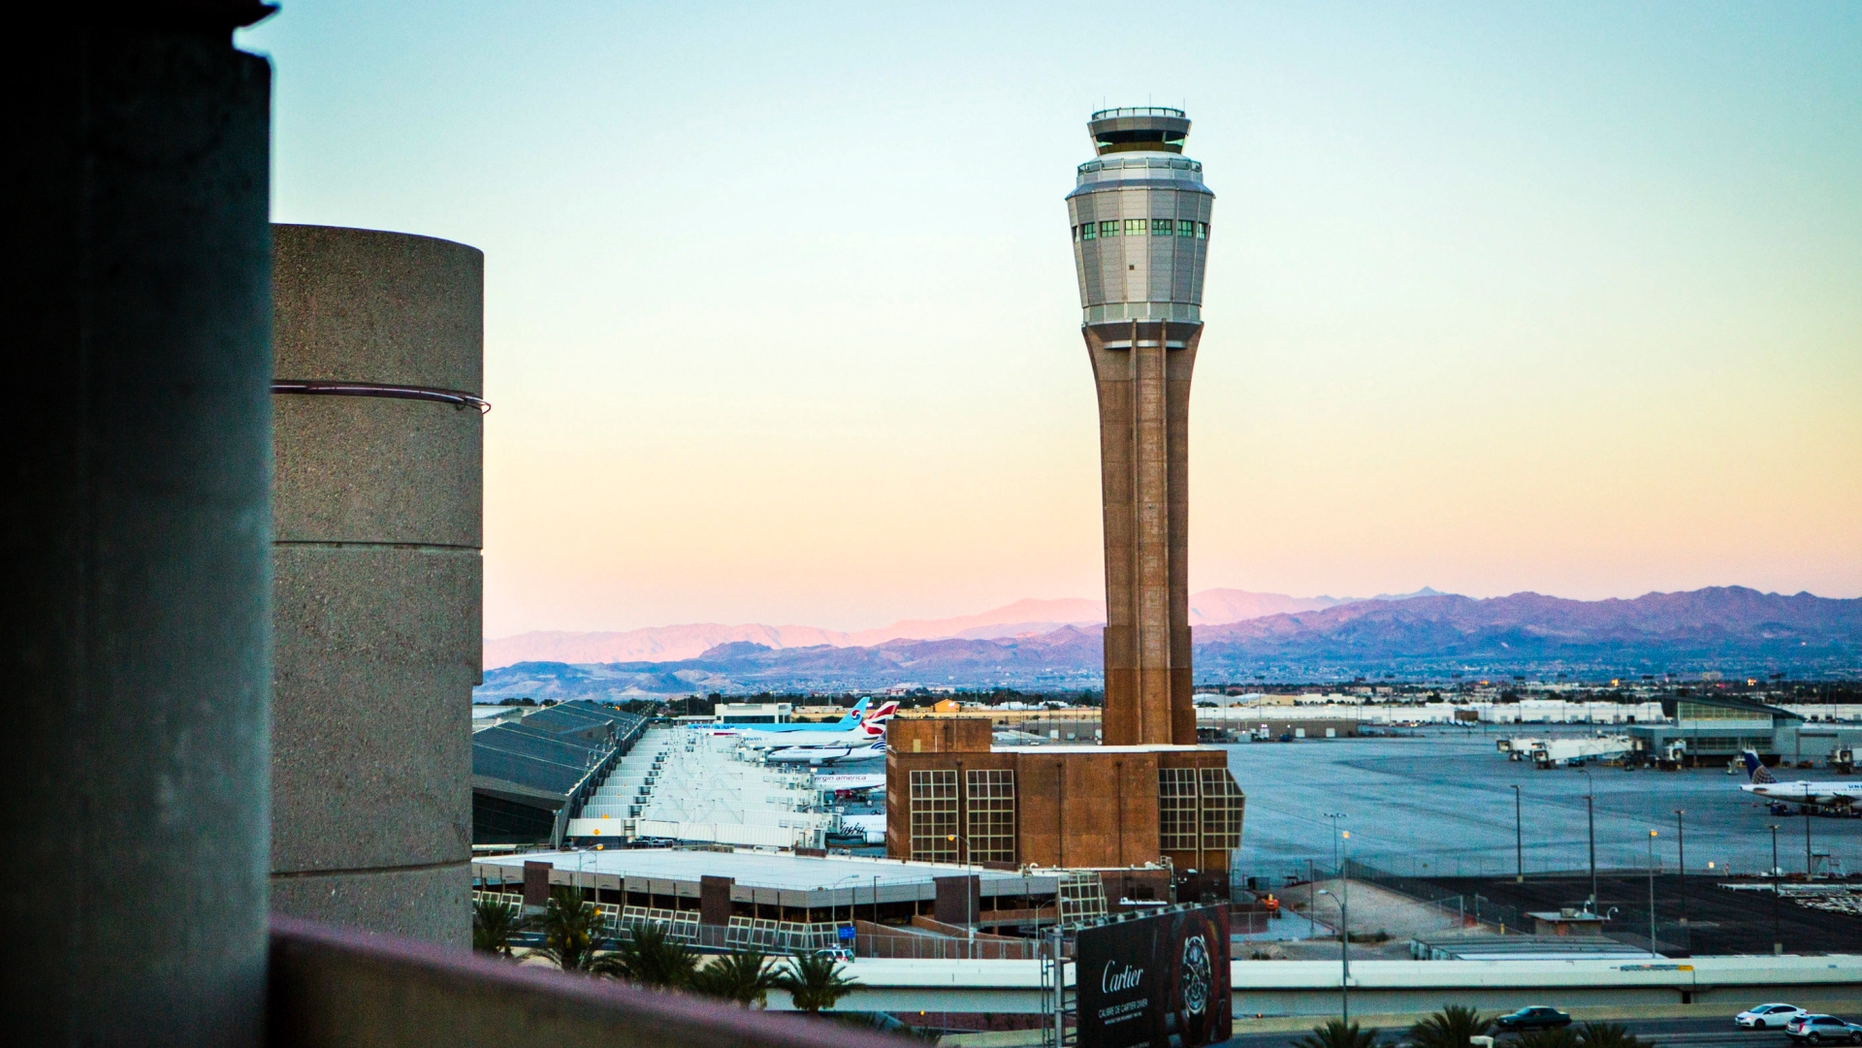 Federal and airport authorities said Friday they are investigating why an air traffic controller became incapacitated and went silent while working a night shift alone in the tower at busy McCarran International Airport in Las Vegas. (Jeff Scheid/Las Vegas Review-Journal via AP, File)